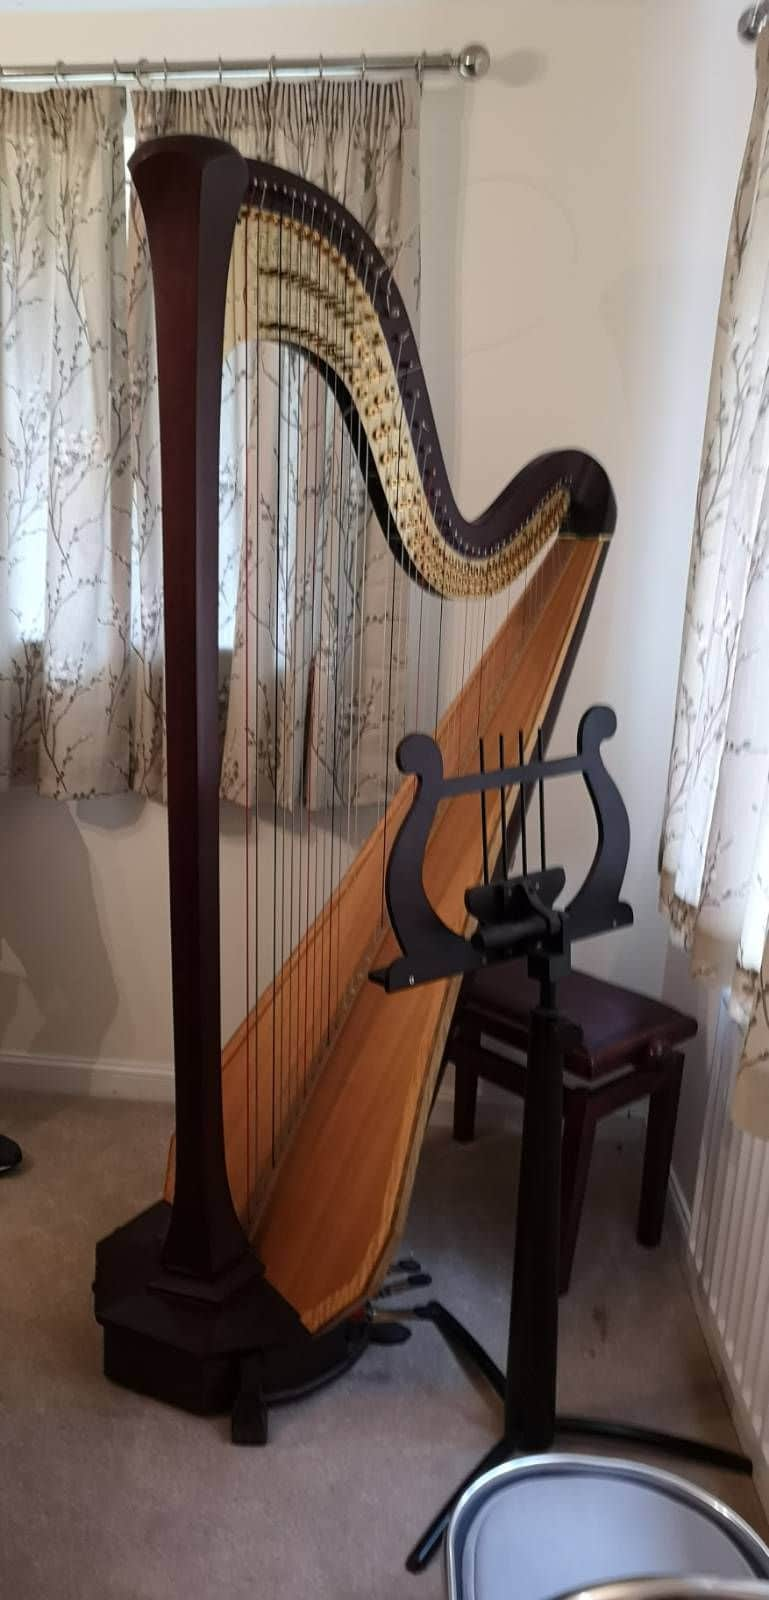 specialist-move-today-trumpets-a-piano-and-this-very-special-harp-https-t-co-jdmowaqbic